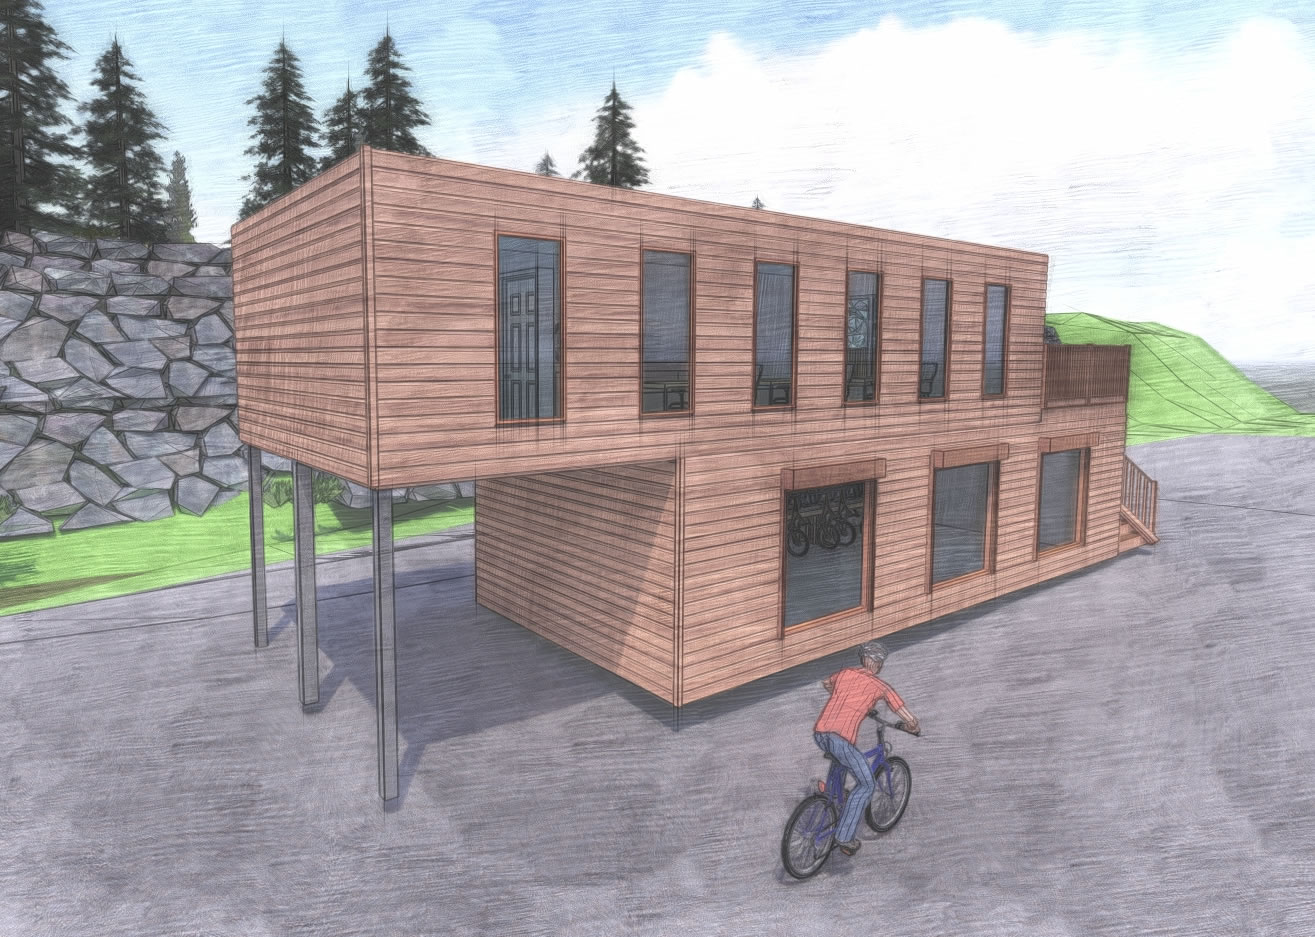 wood cladding cyclewise container design 2 story bike storage